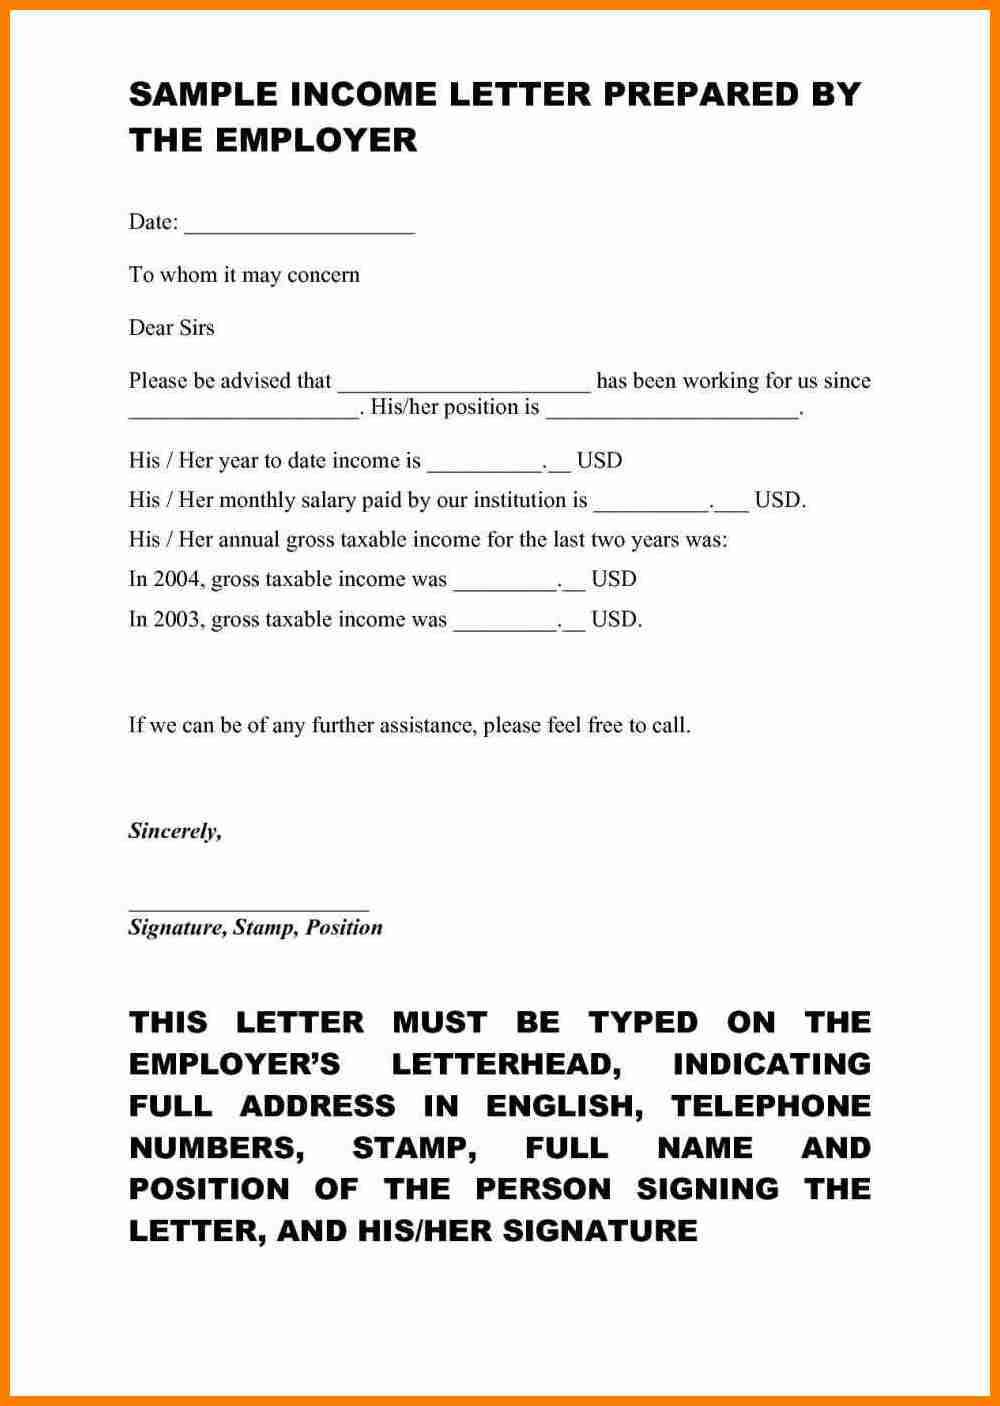 Proof Of No Income Letter Template - How to Write A Letter Self Employment Image Collections Letter